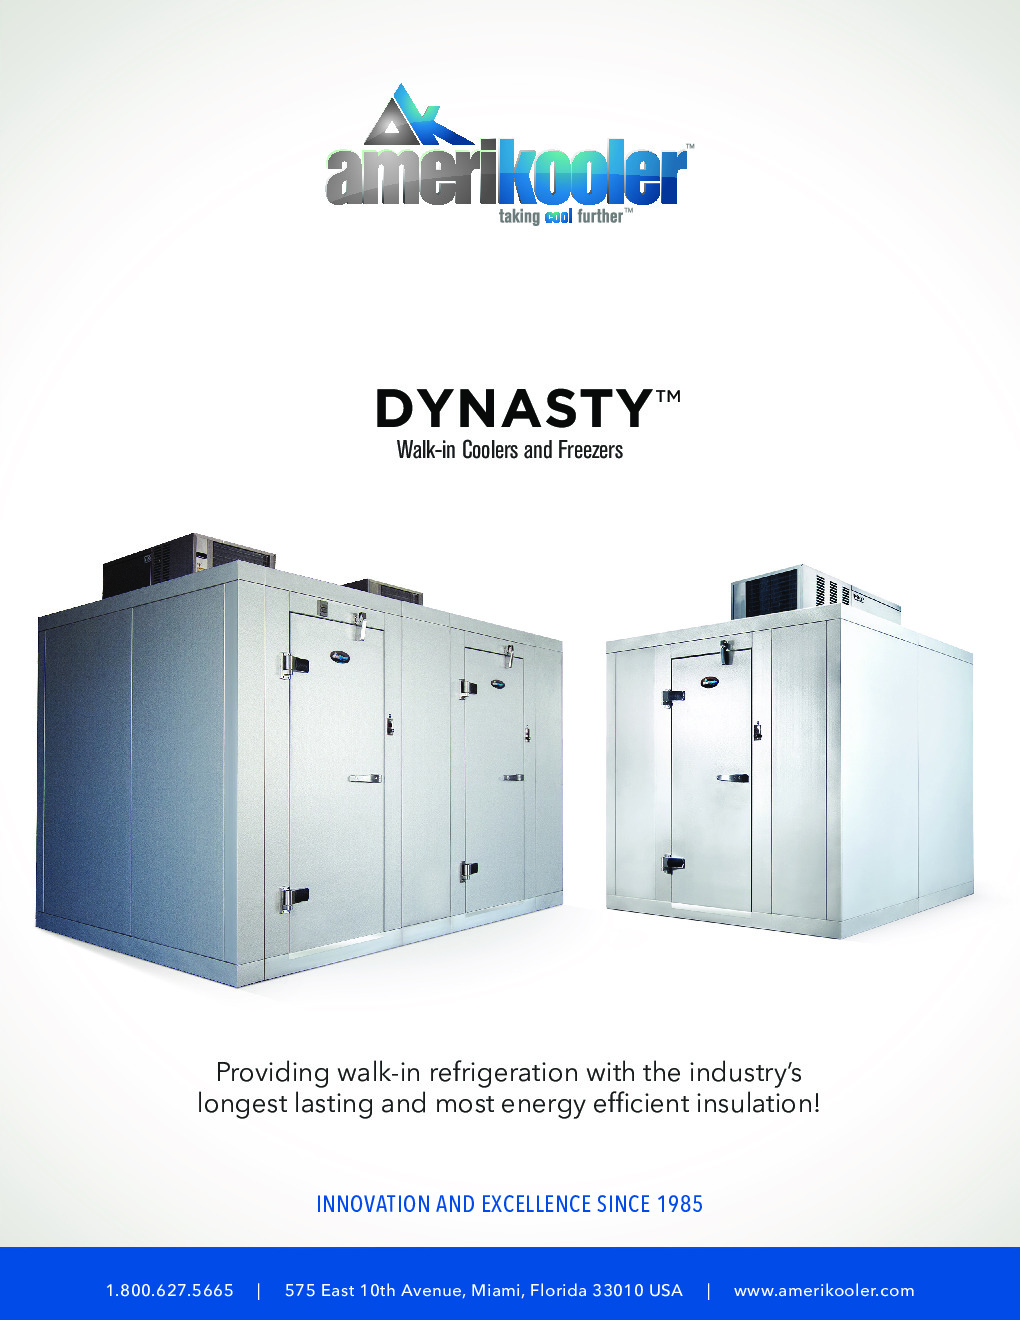 AmeriKooler DW082077N-8/12-SC 8' X 20' Walk-In Cooler, 12' L Cooler without Floor and 8' L Freezer, Self Contained